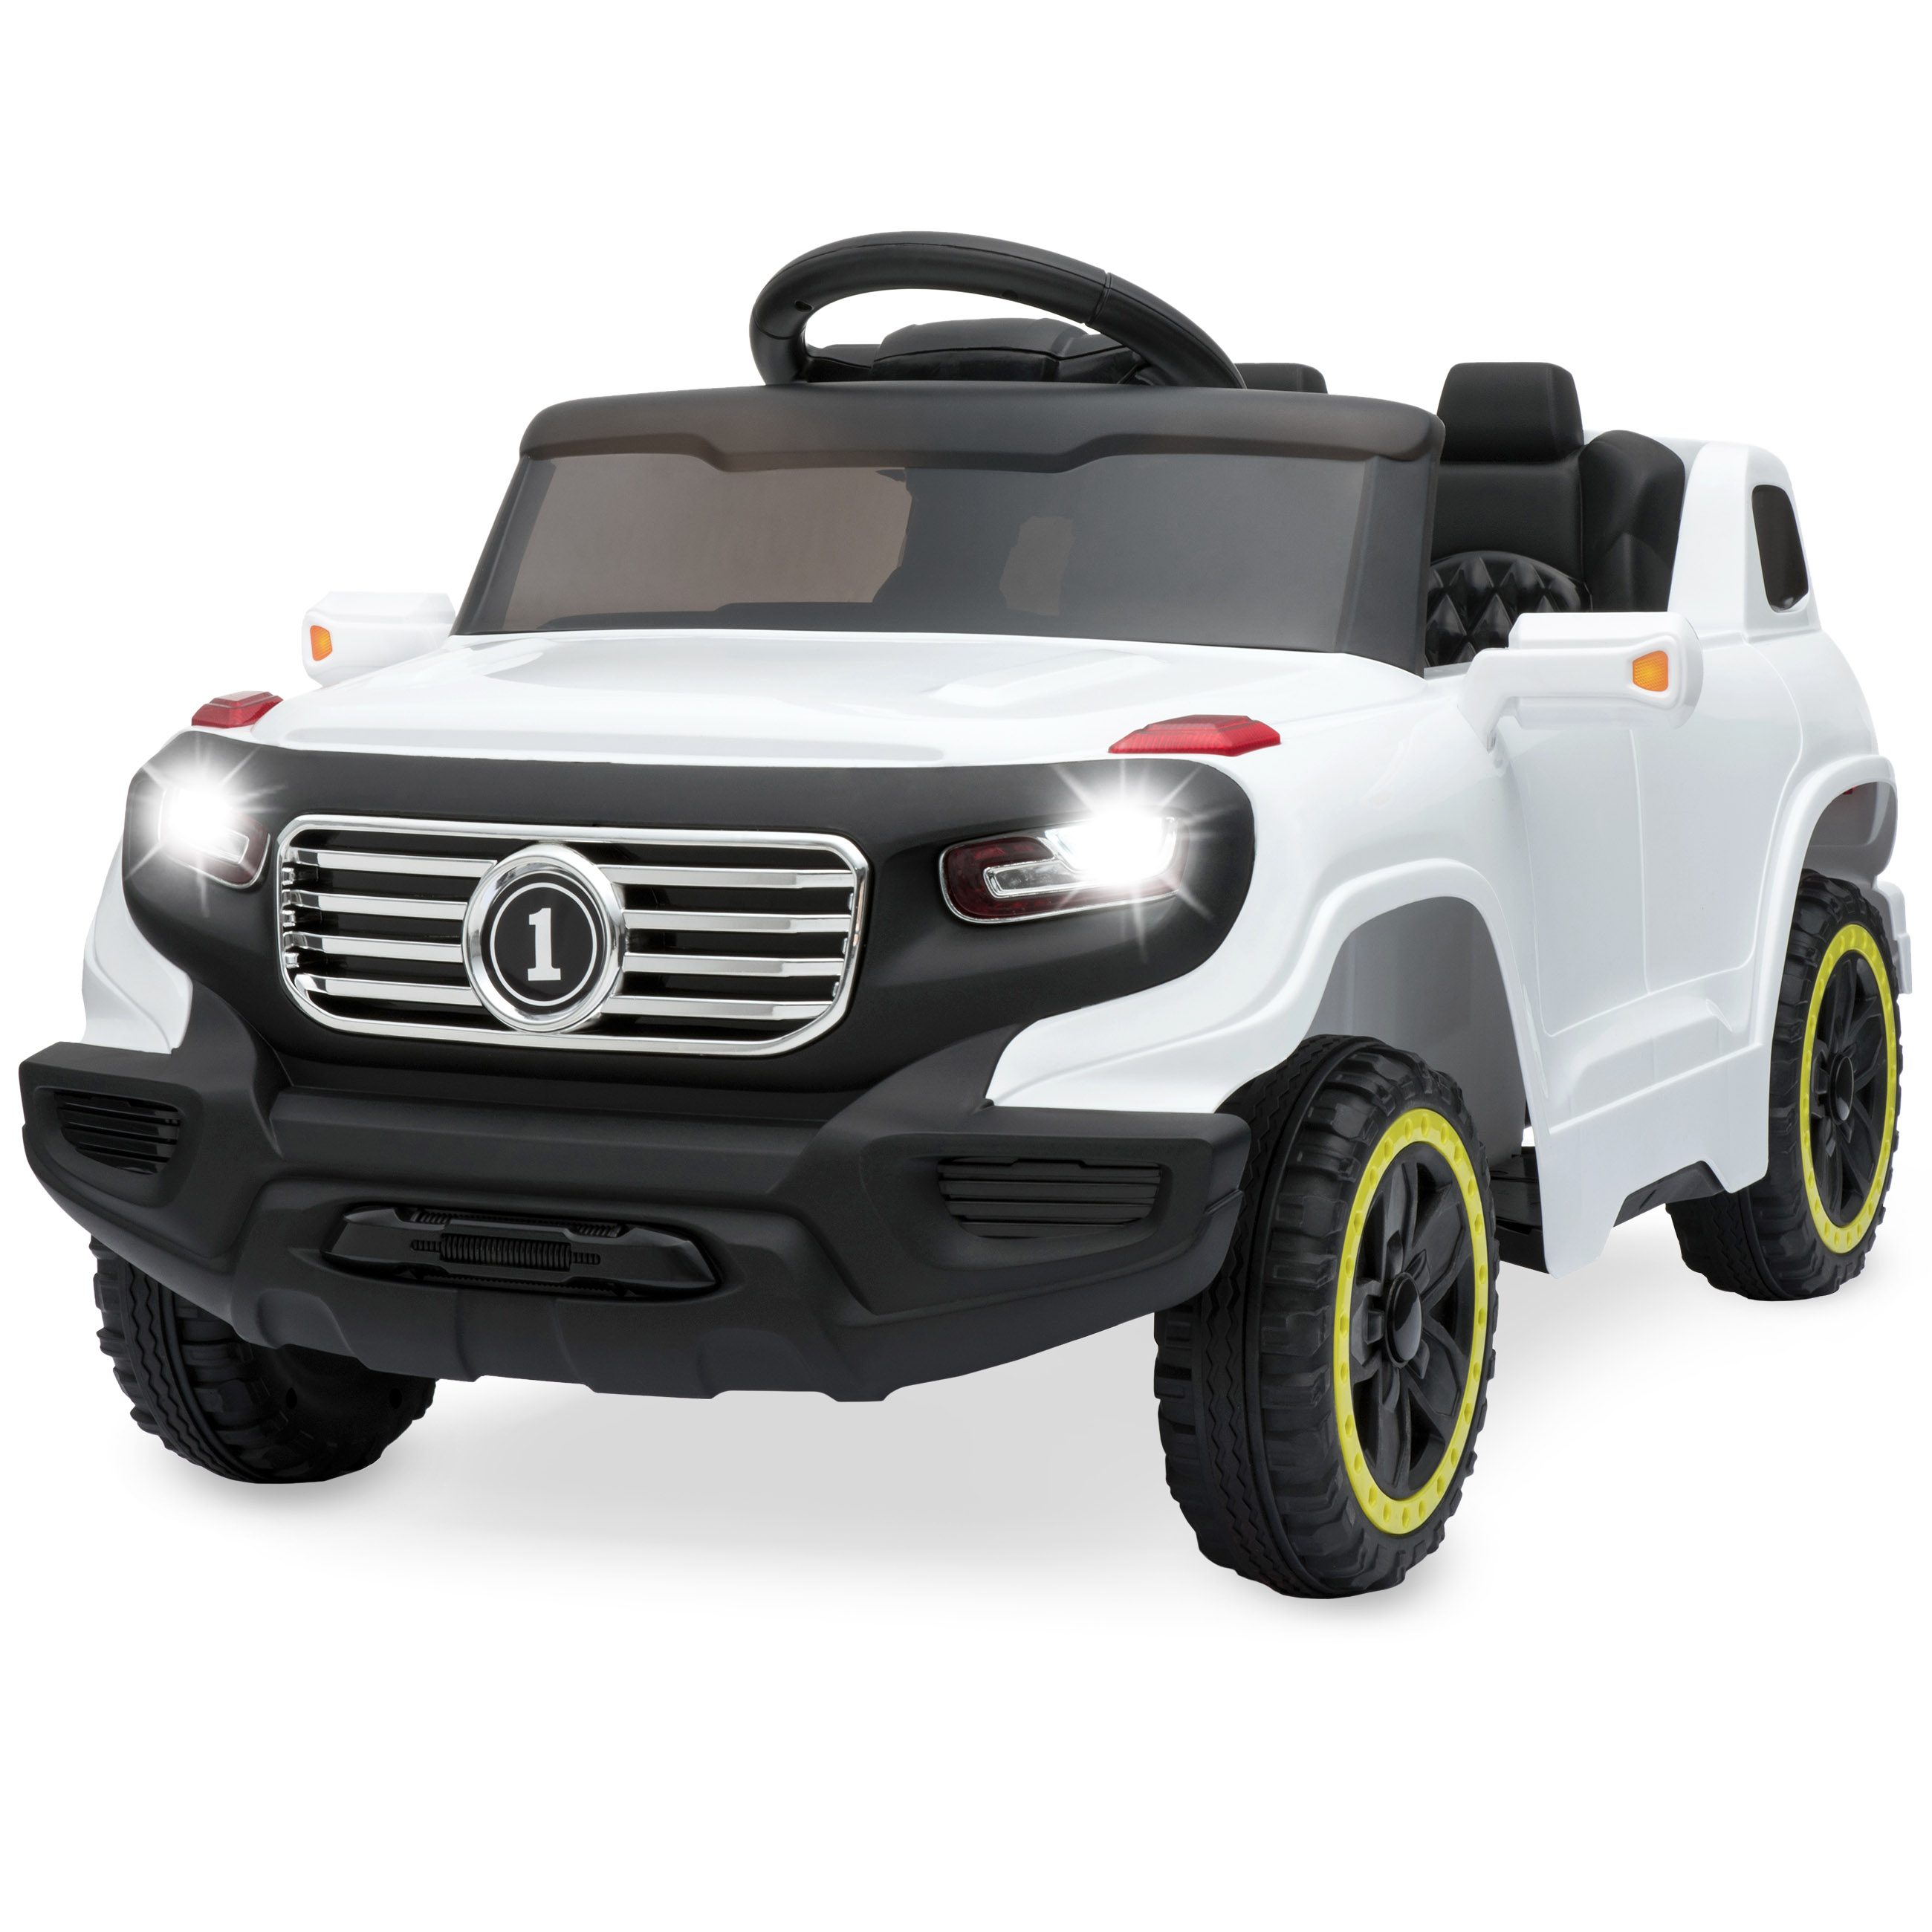 Best Choice Products 6V Kids Ride-On Car Truck w/ Parent Control, 3 Speeds, LED Headlights, MP3 Player, Horn - Pink